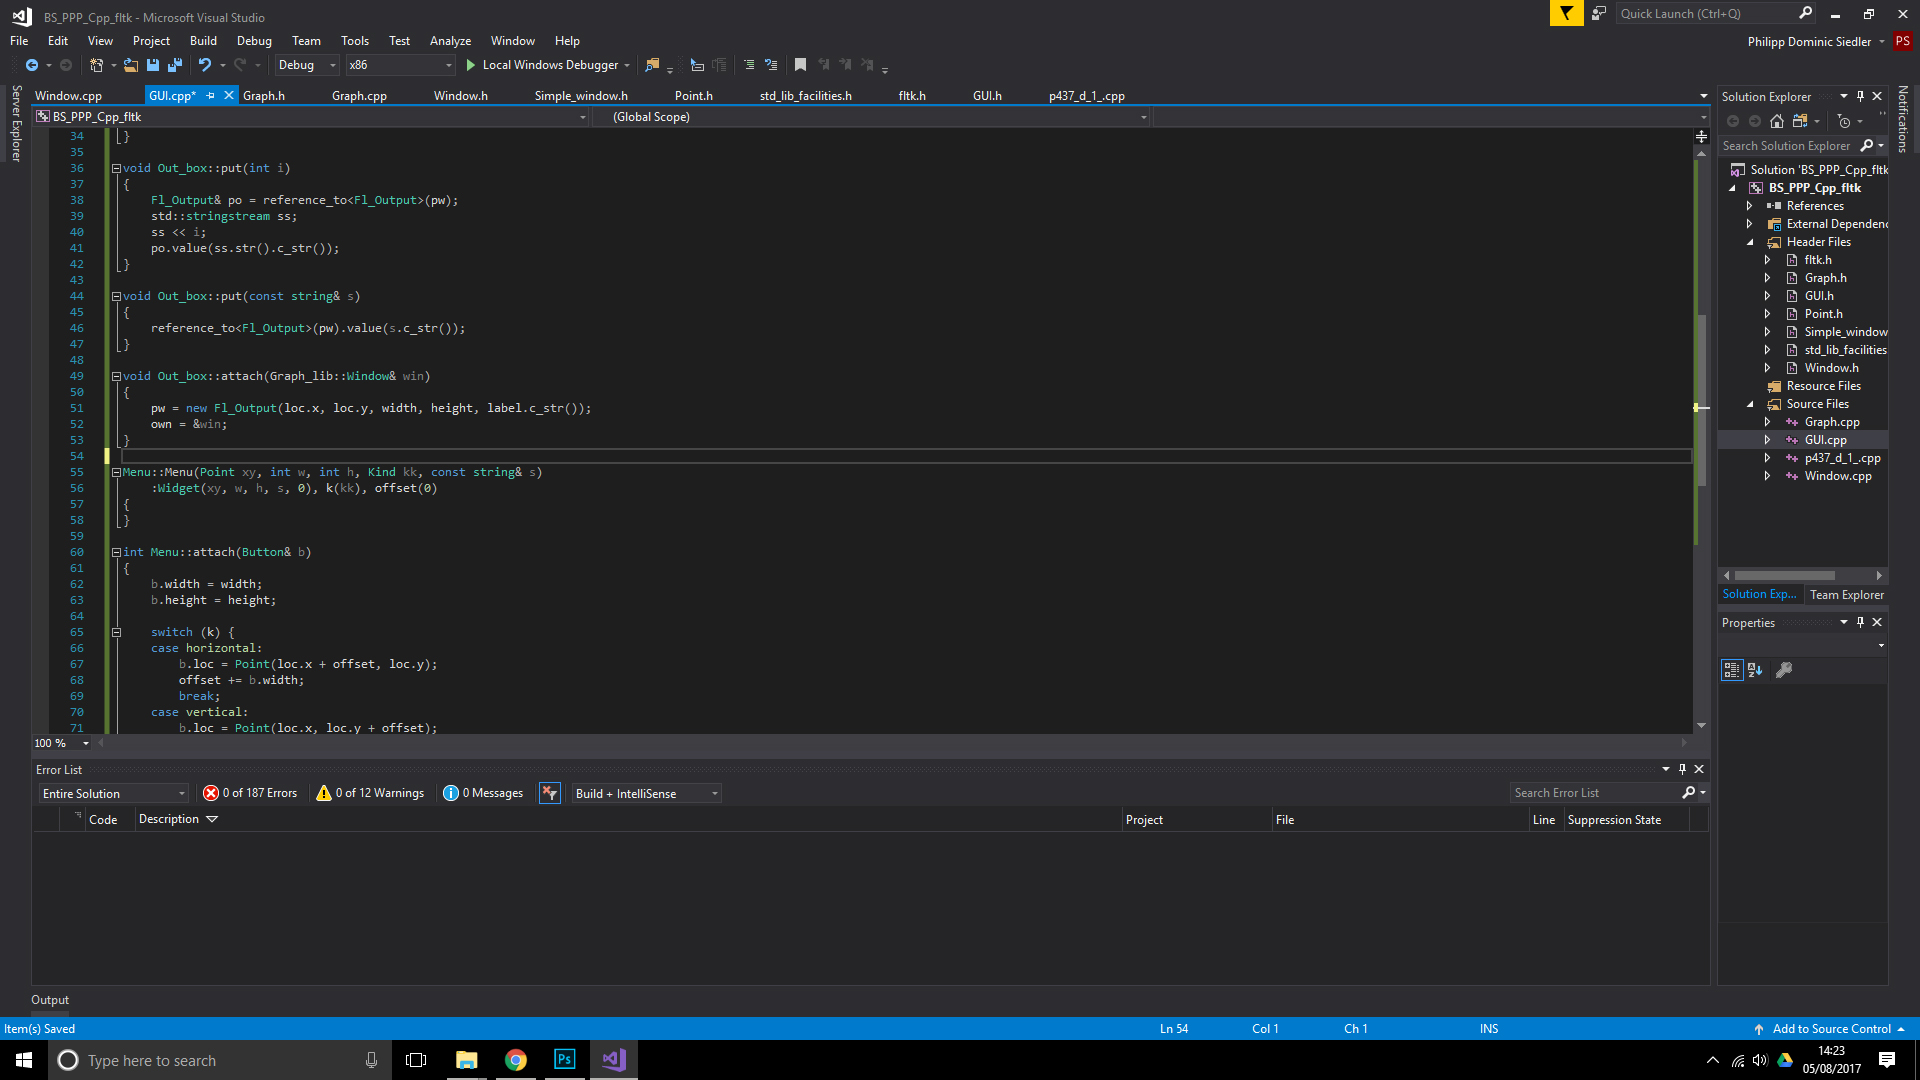 How To Install And Use Fltk 1 3 4 In Visual Studio 2017 Complete Guide Bumpyroadtocode